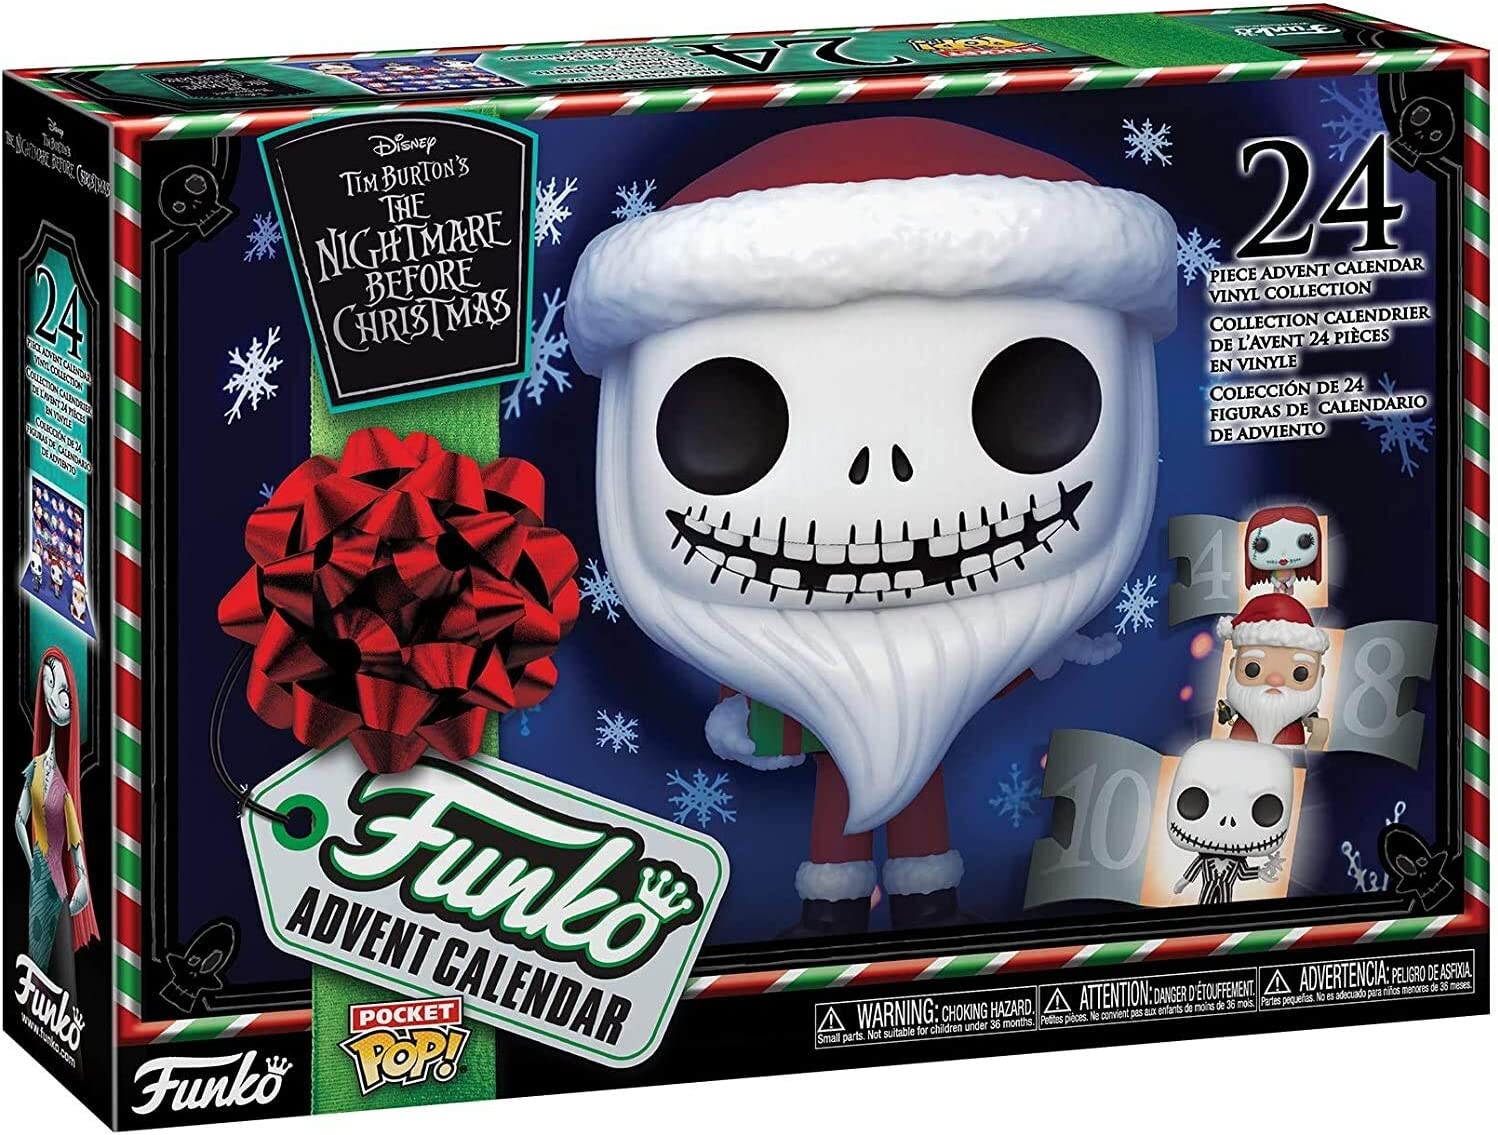 Nbc Christmas Schedule 2020 Amazon.com: Funko Advent Calendar: The Nightmare Before Christmas